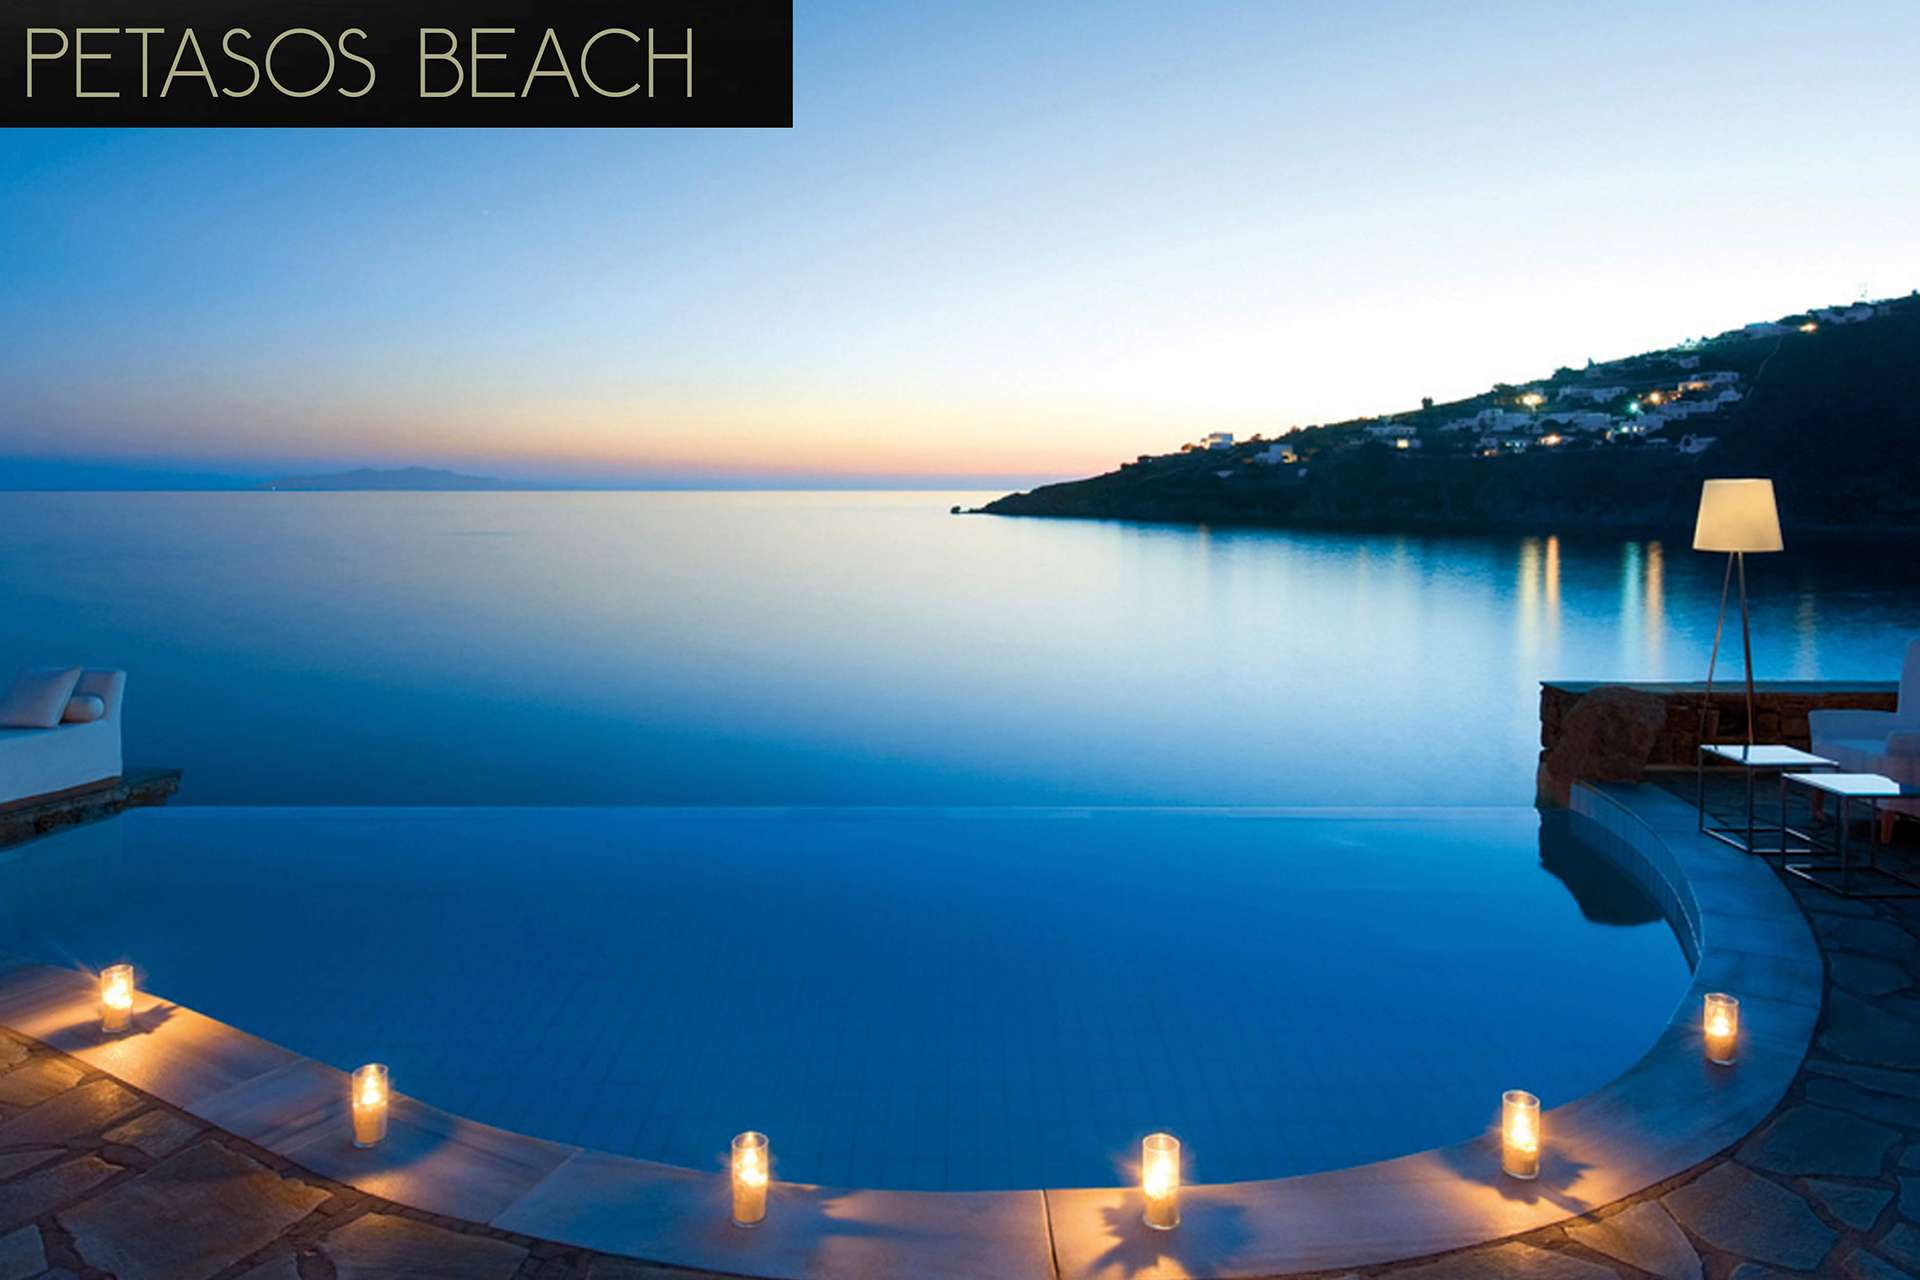 petasos-beach-resort-and-spa-hotel-mykonos-exclusive